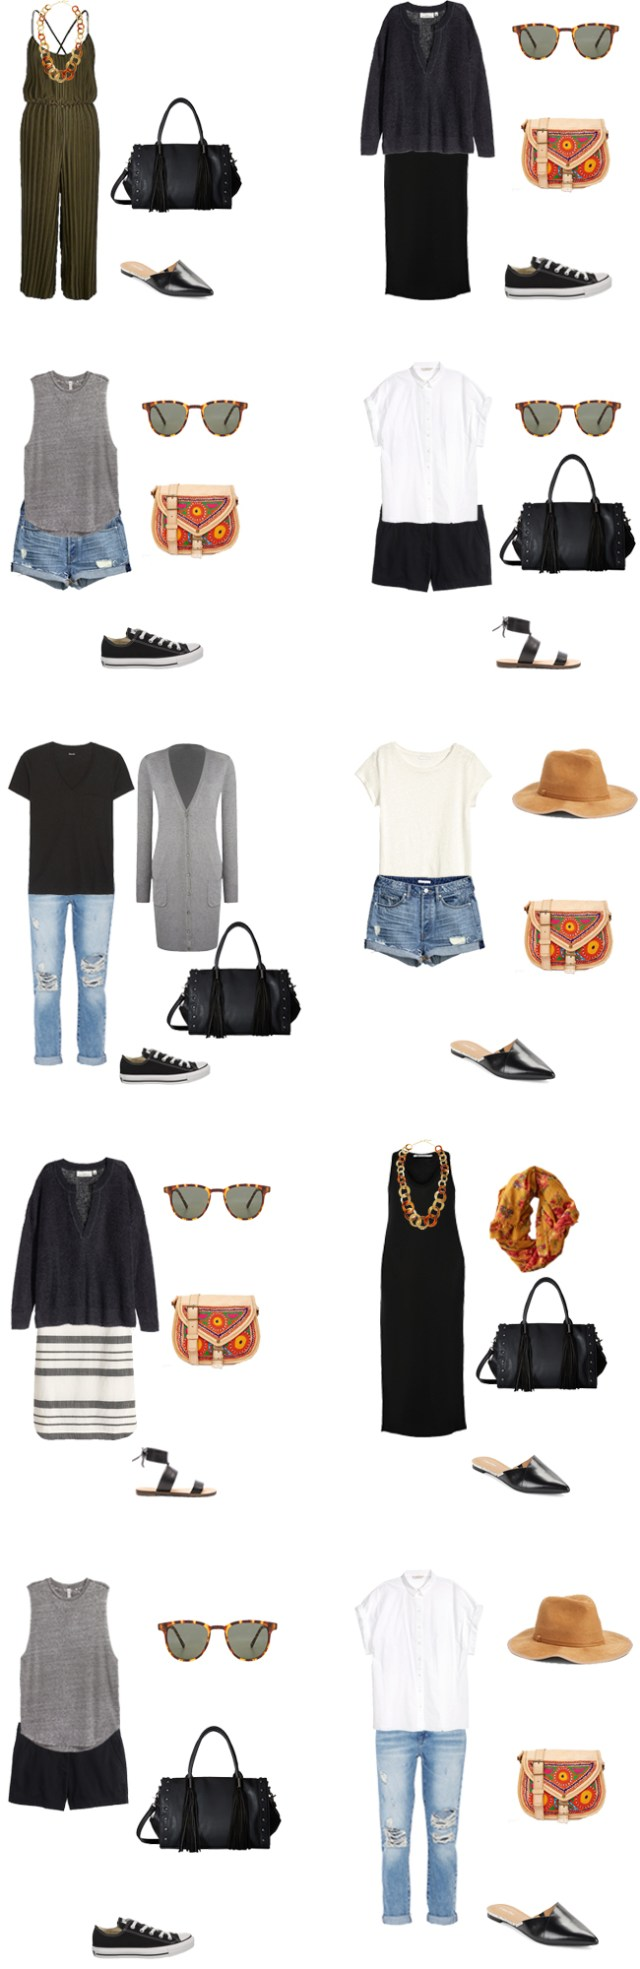 What to Wear in Sydney Australia Outfit Options 11-20 #travelight #traveltips #travel